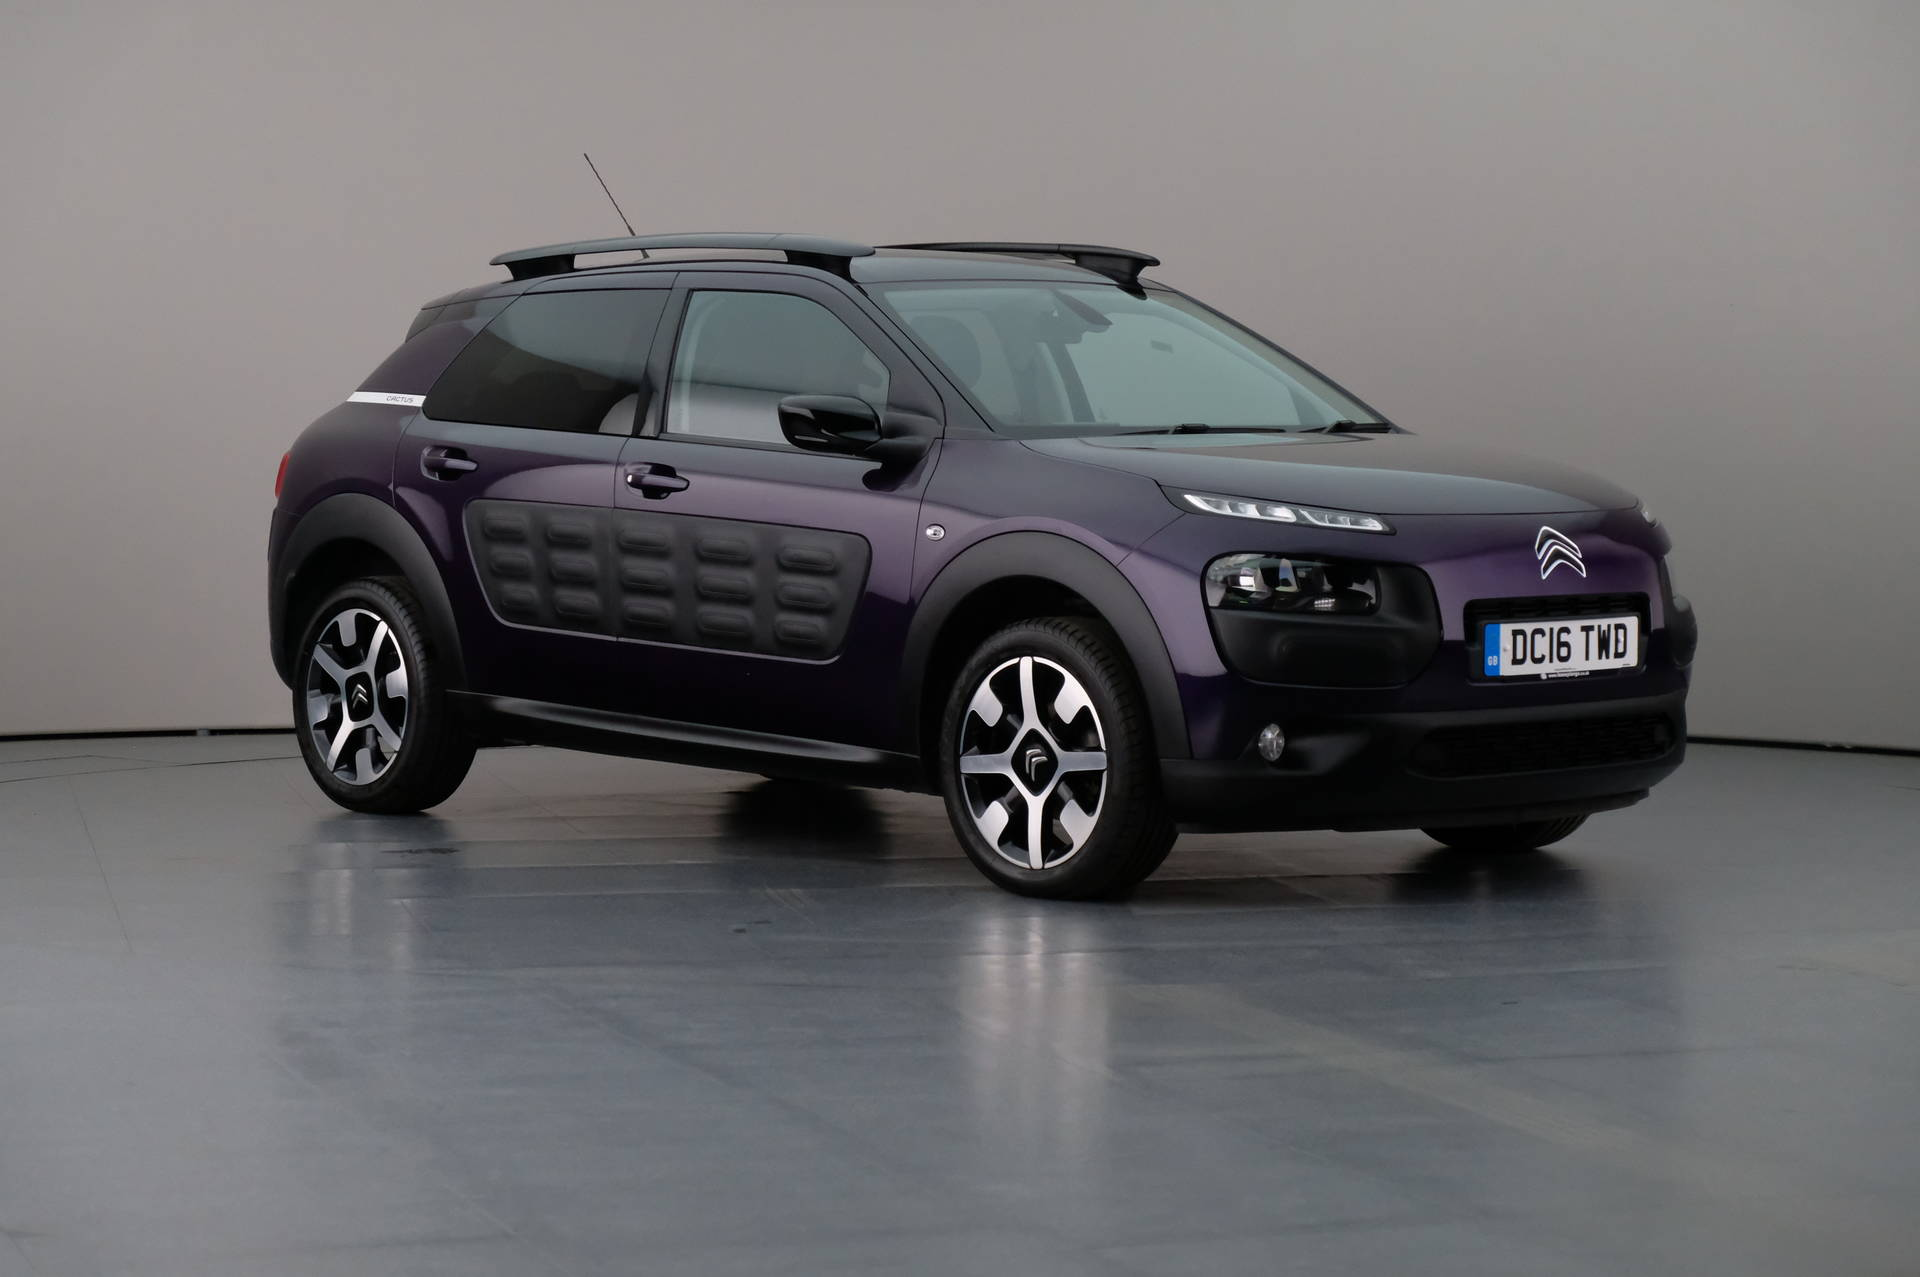 Citroën C4 Cactus 1.6 Blue HDi Flair Edition 5dr, 360-image0